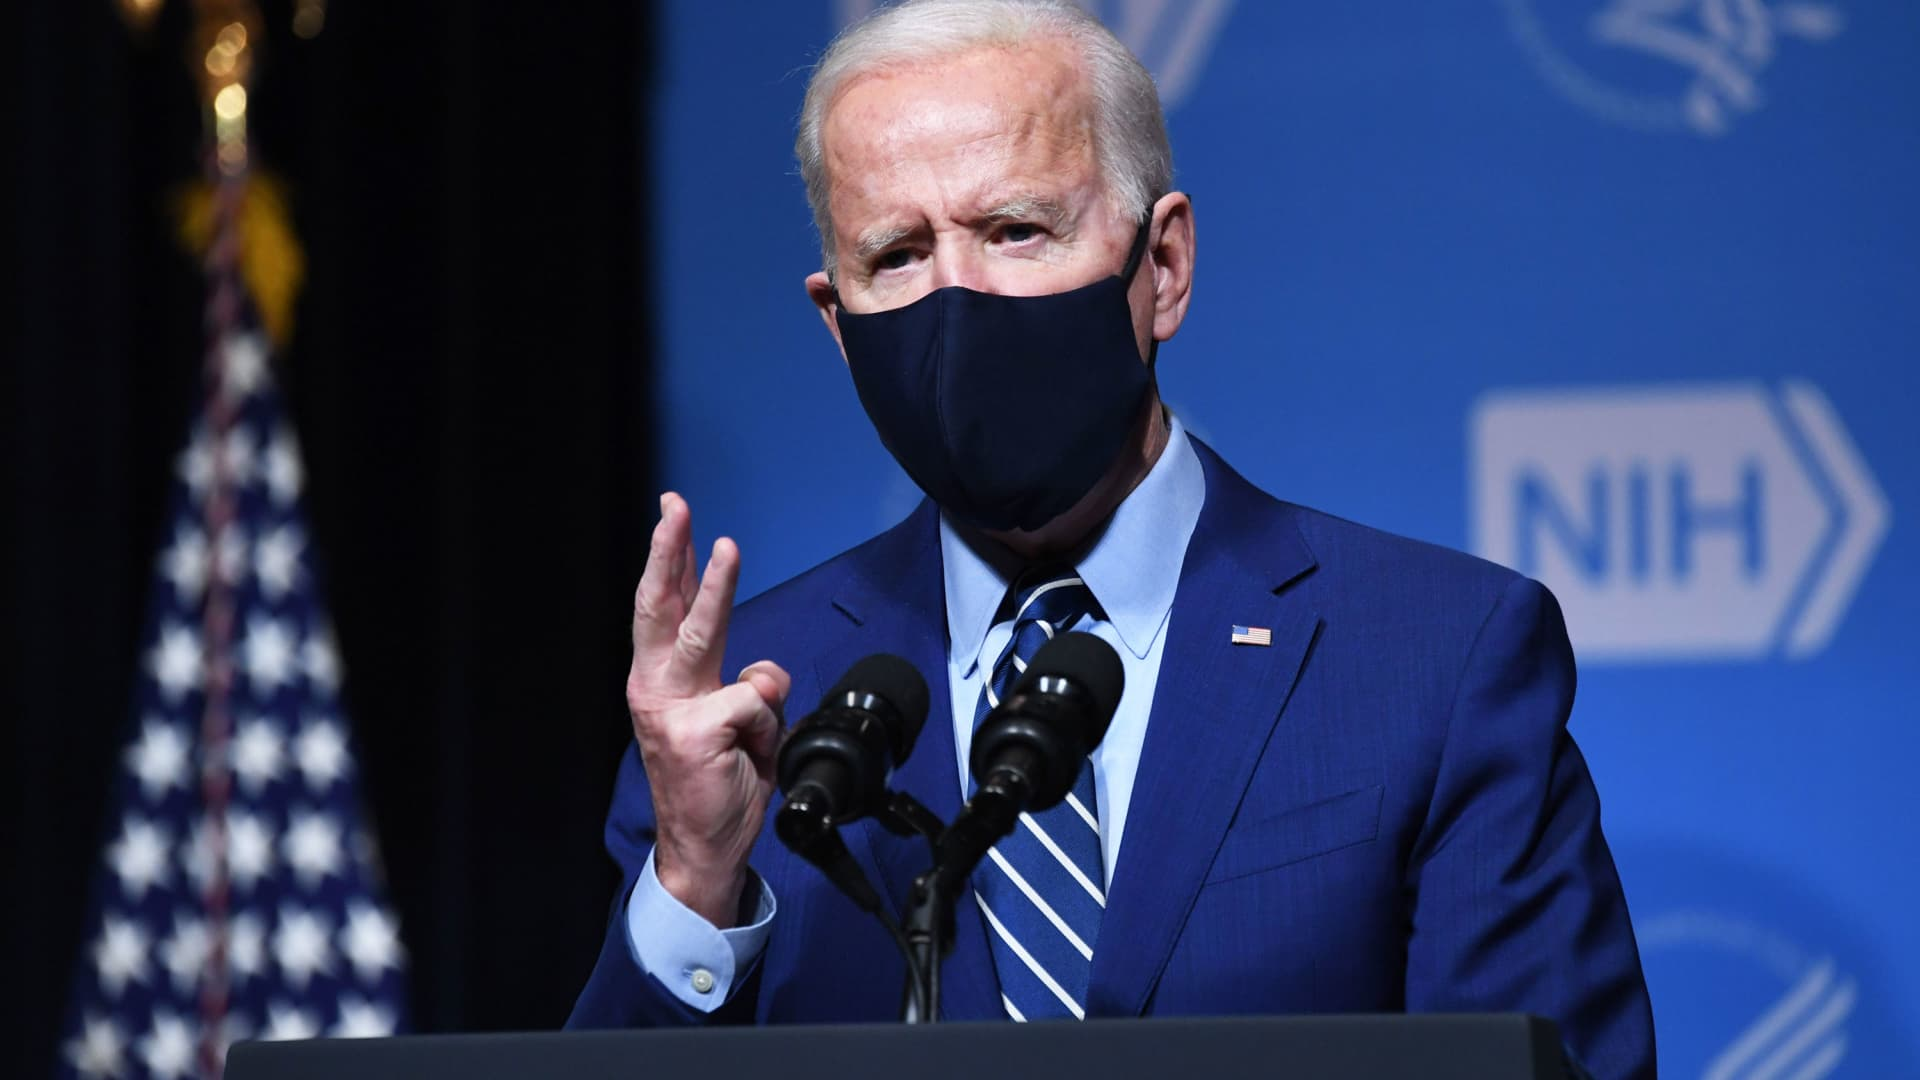 President Joe Biden speaks during a visit to the National Institutes of Health (NIH) in Bethesda, Maryland, February 11, 2021.